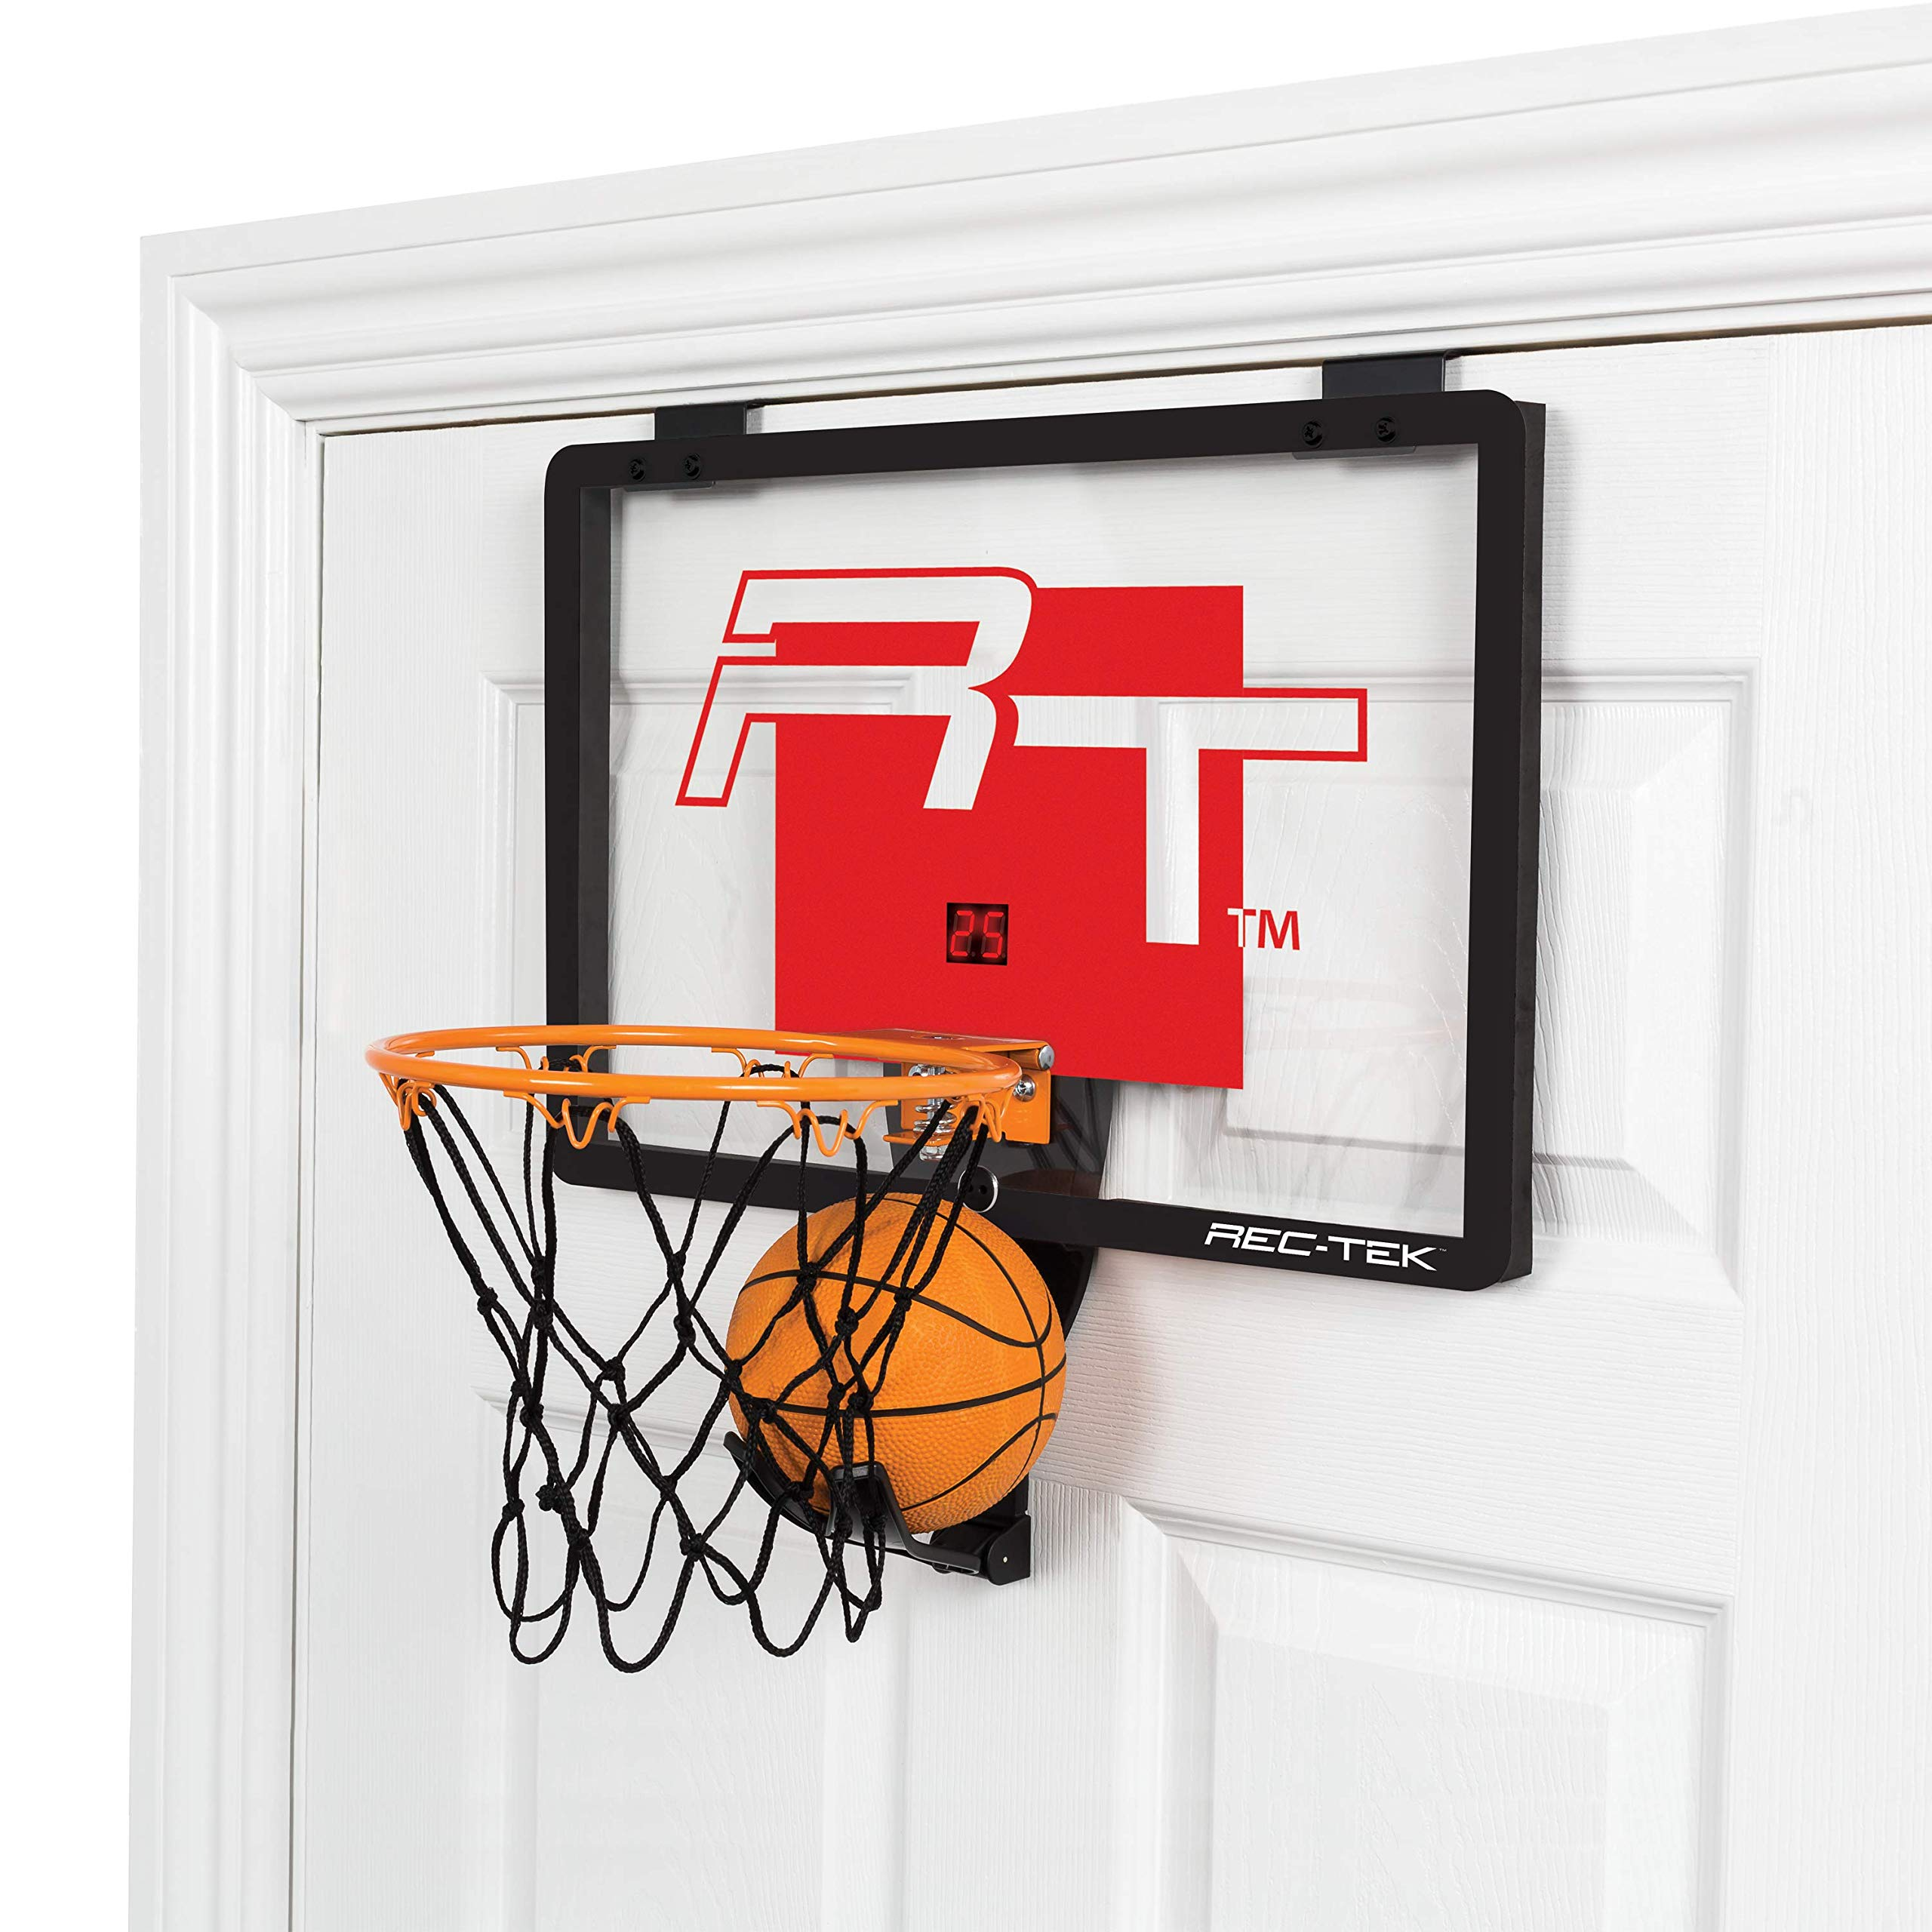 Rec-Tek Deluxe Over The Door Basketball Hoop Game for Kids - Features Built-In Ball Holder, No Tools Required - Complete with All Accessories by Rec-Tek